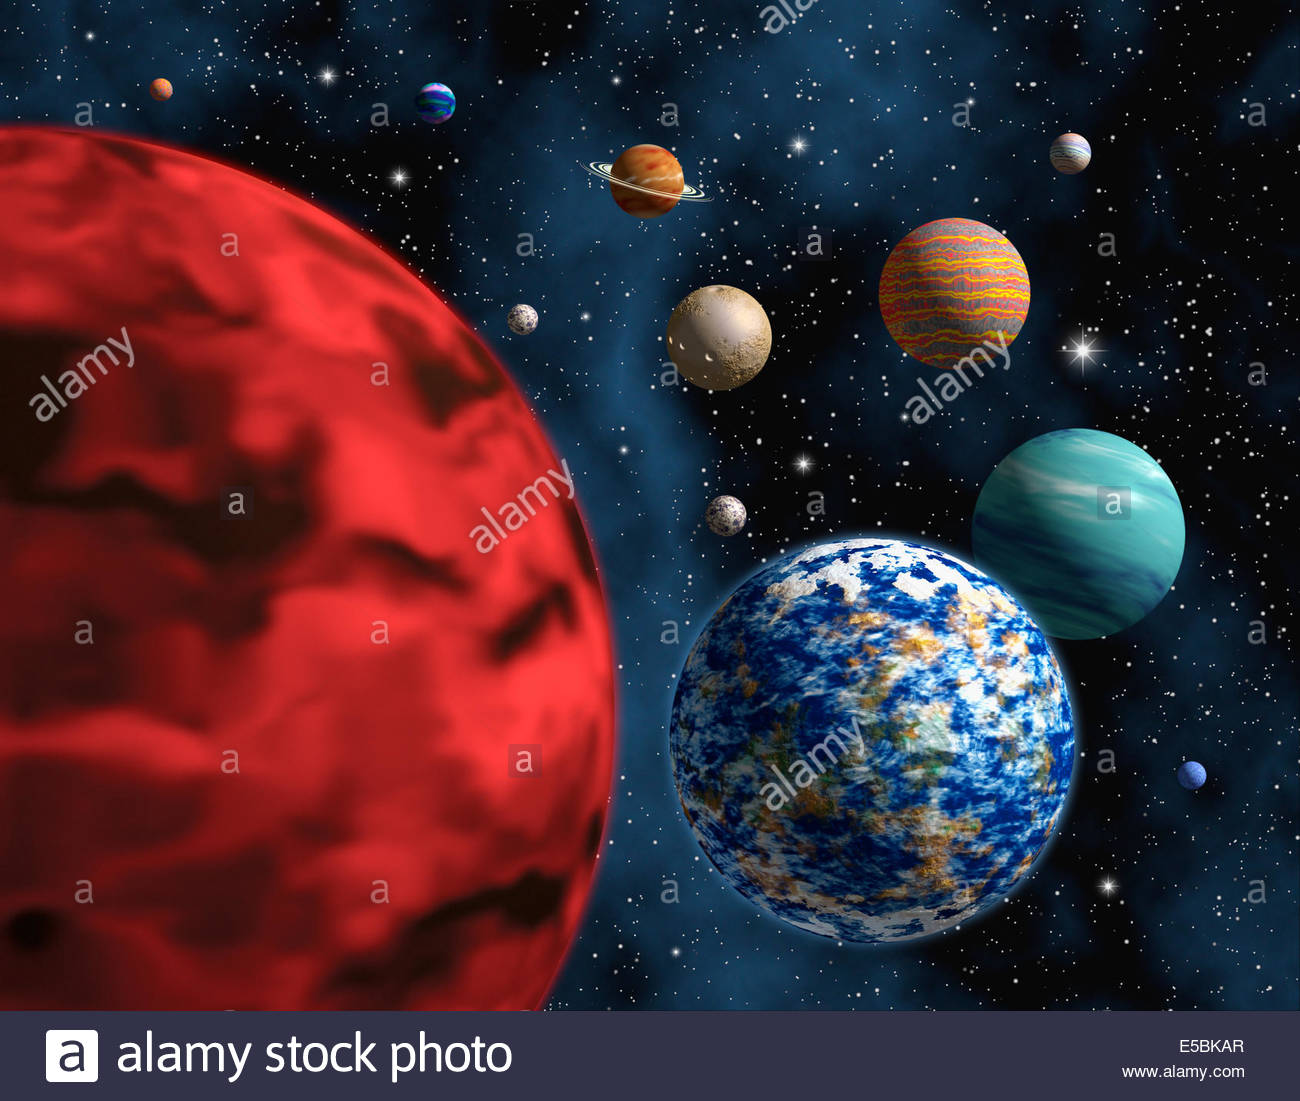 Illustration Of A Group Generic Not Real Planets In Space